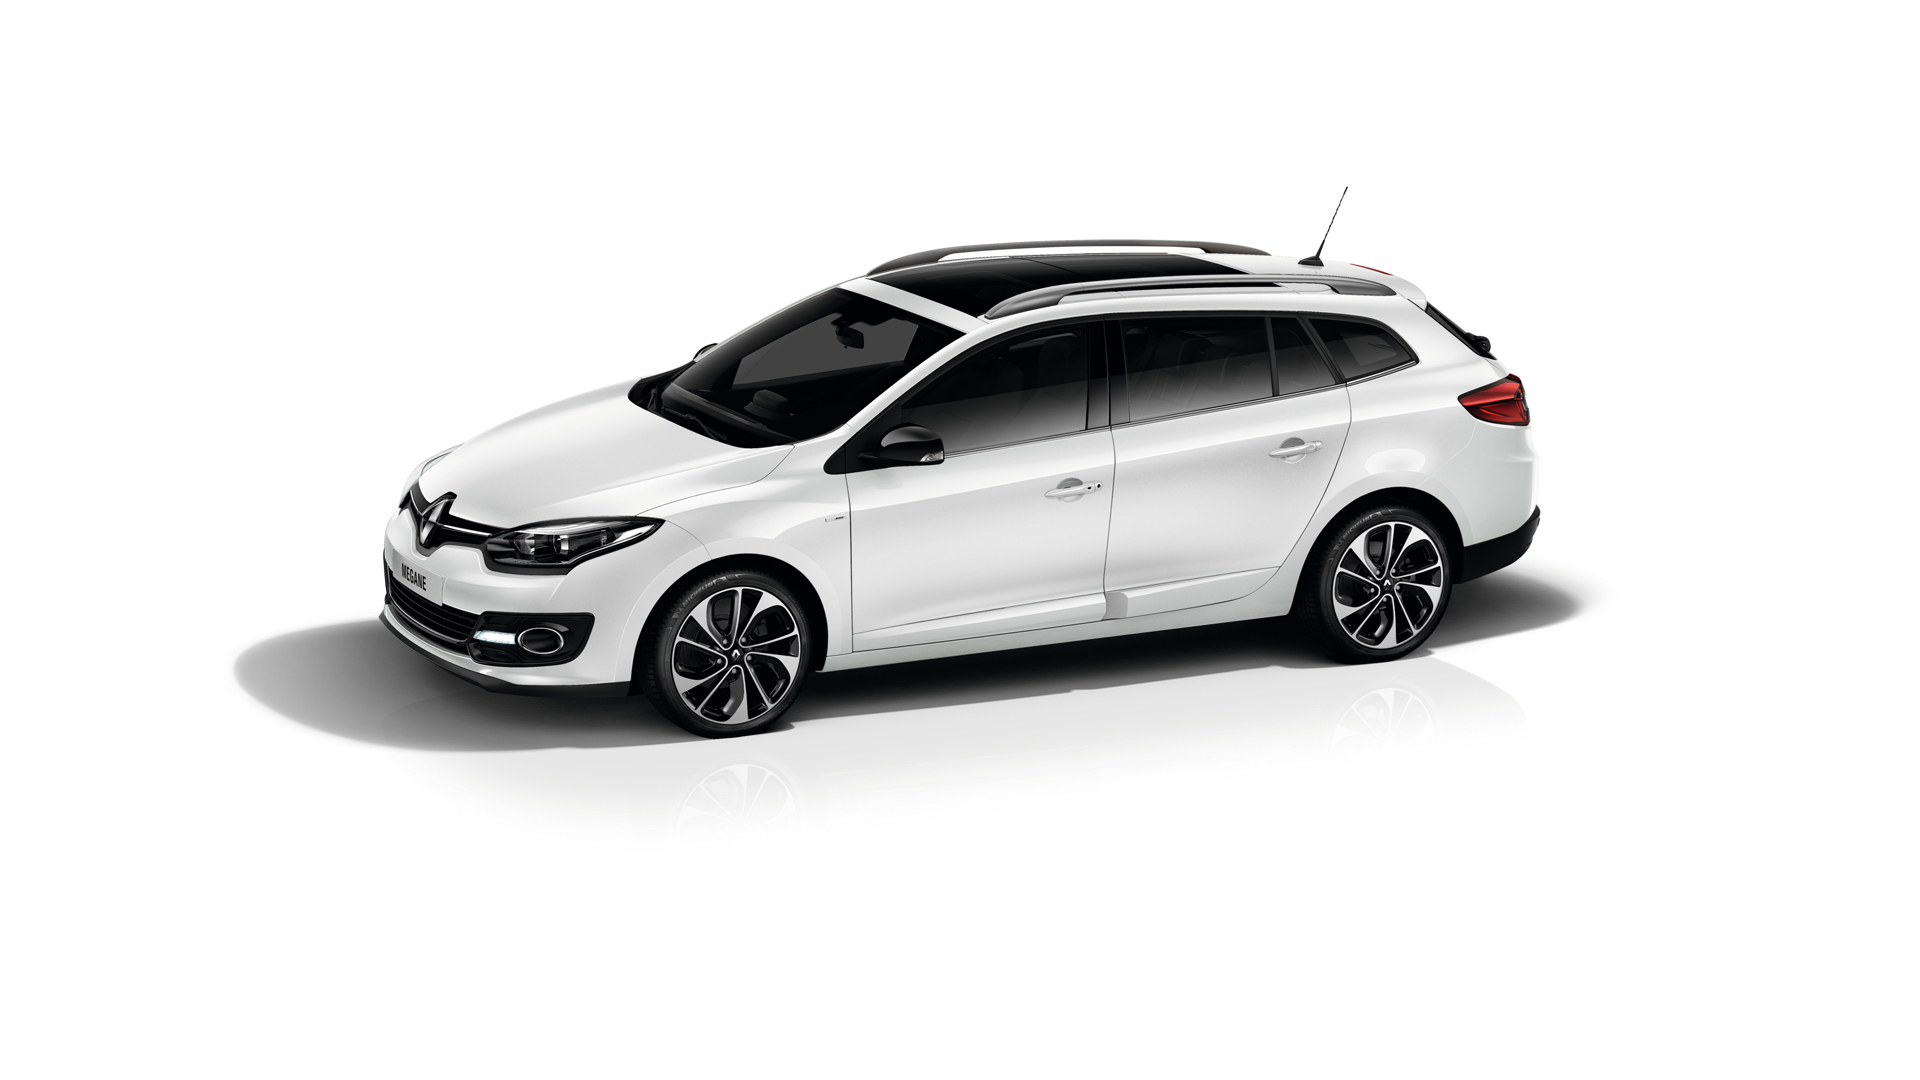 renault megane estate specs 2014 2015 2016 autoevolution. Black Bedroom Furniture Sets. Home Design Ideas